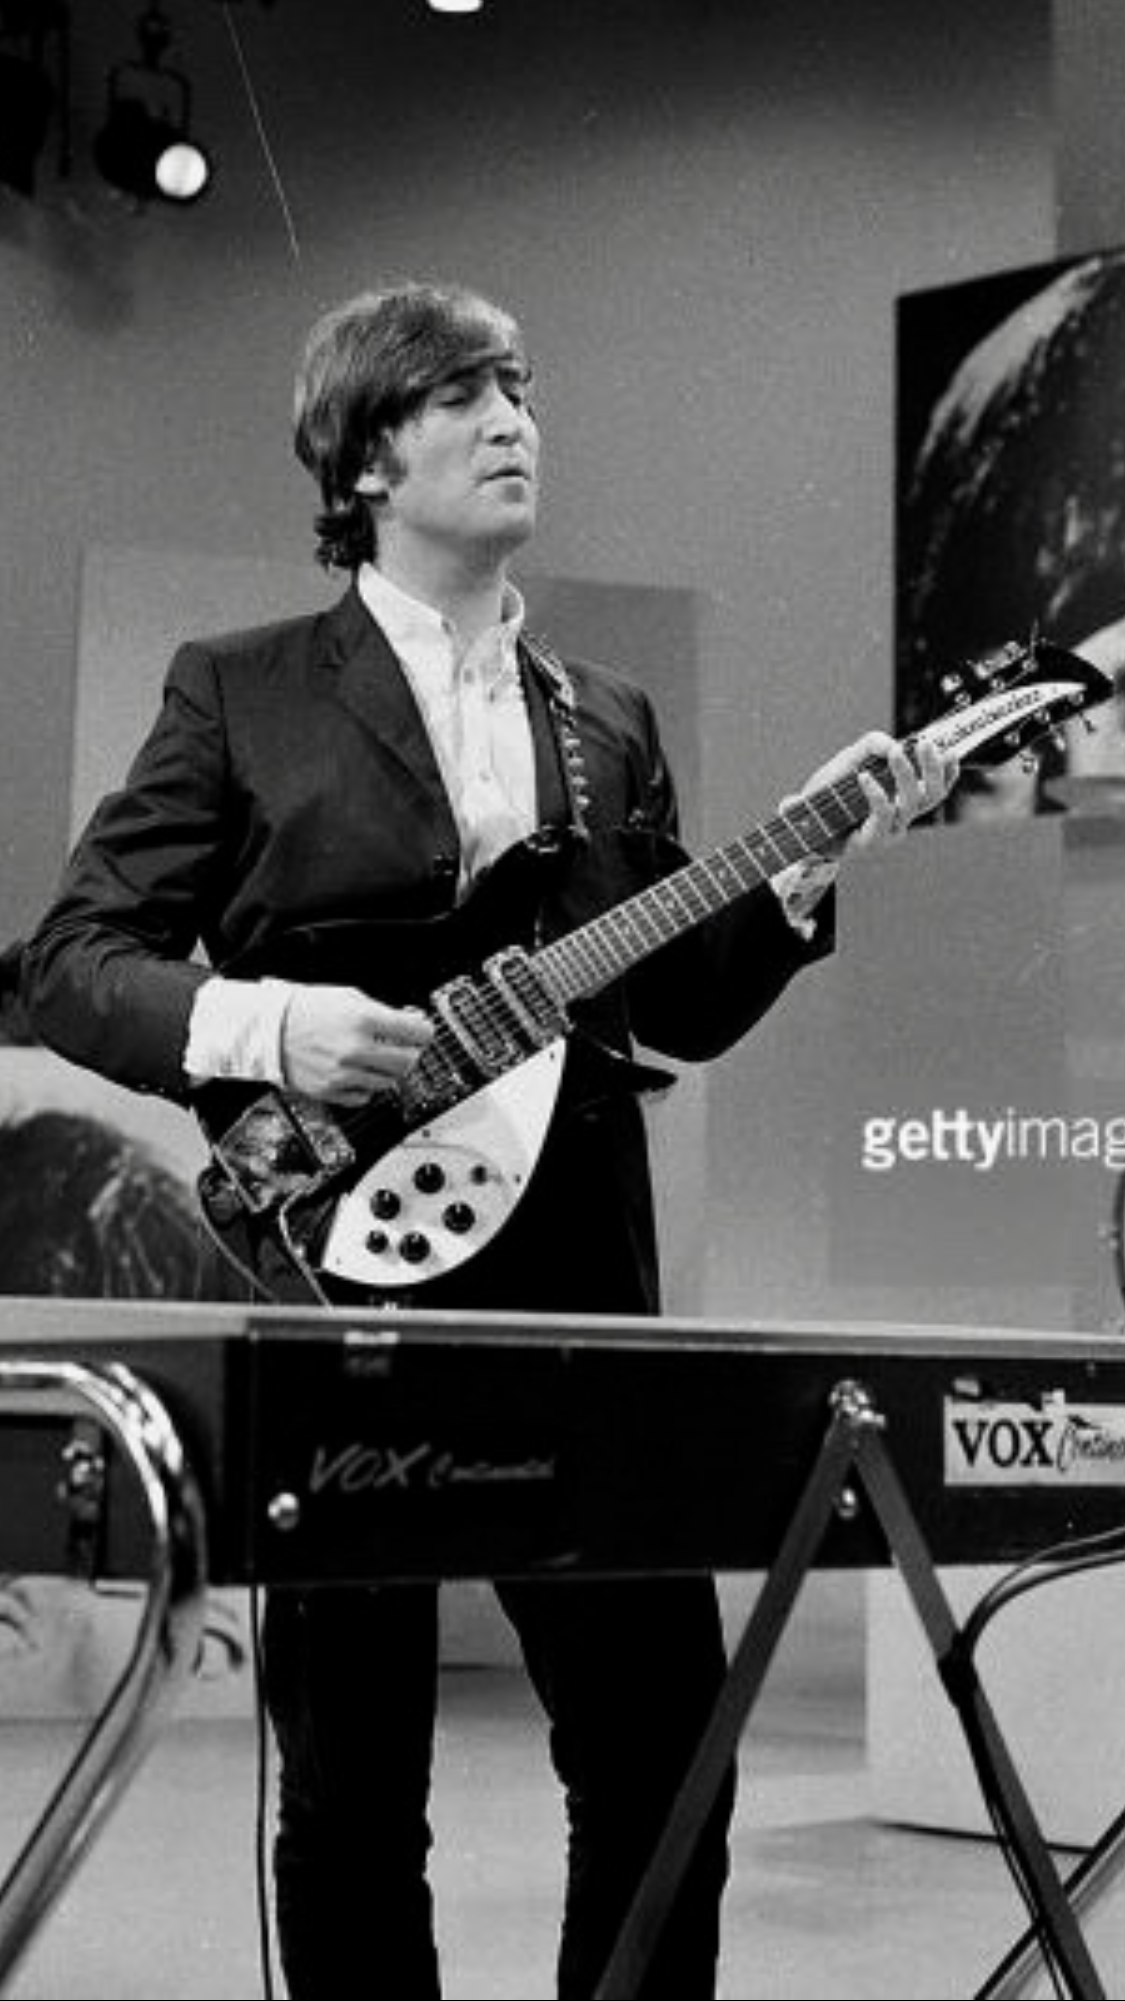 John Lennon Rehearsing For The Ed Sullivan Show August 1965 This Would Be The Beatles Last Live Tv Perform The Beatles John Lennon Guitar John Lennon Beatles